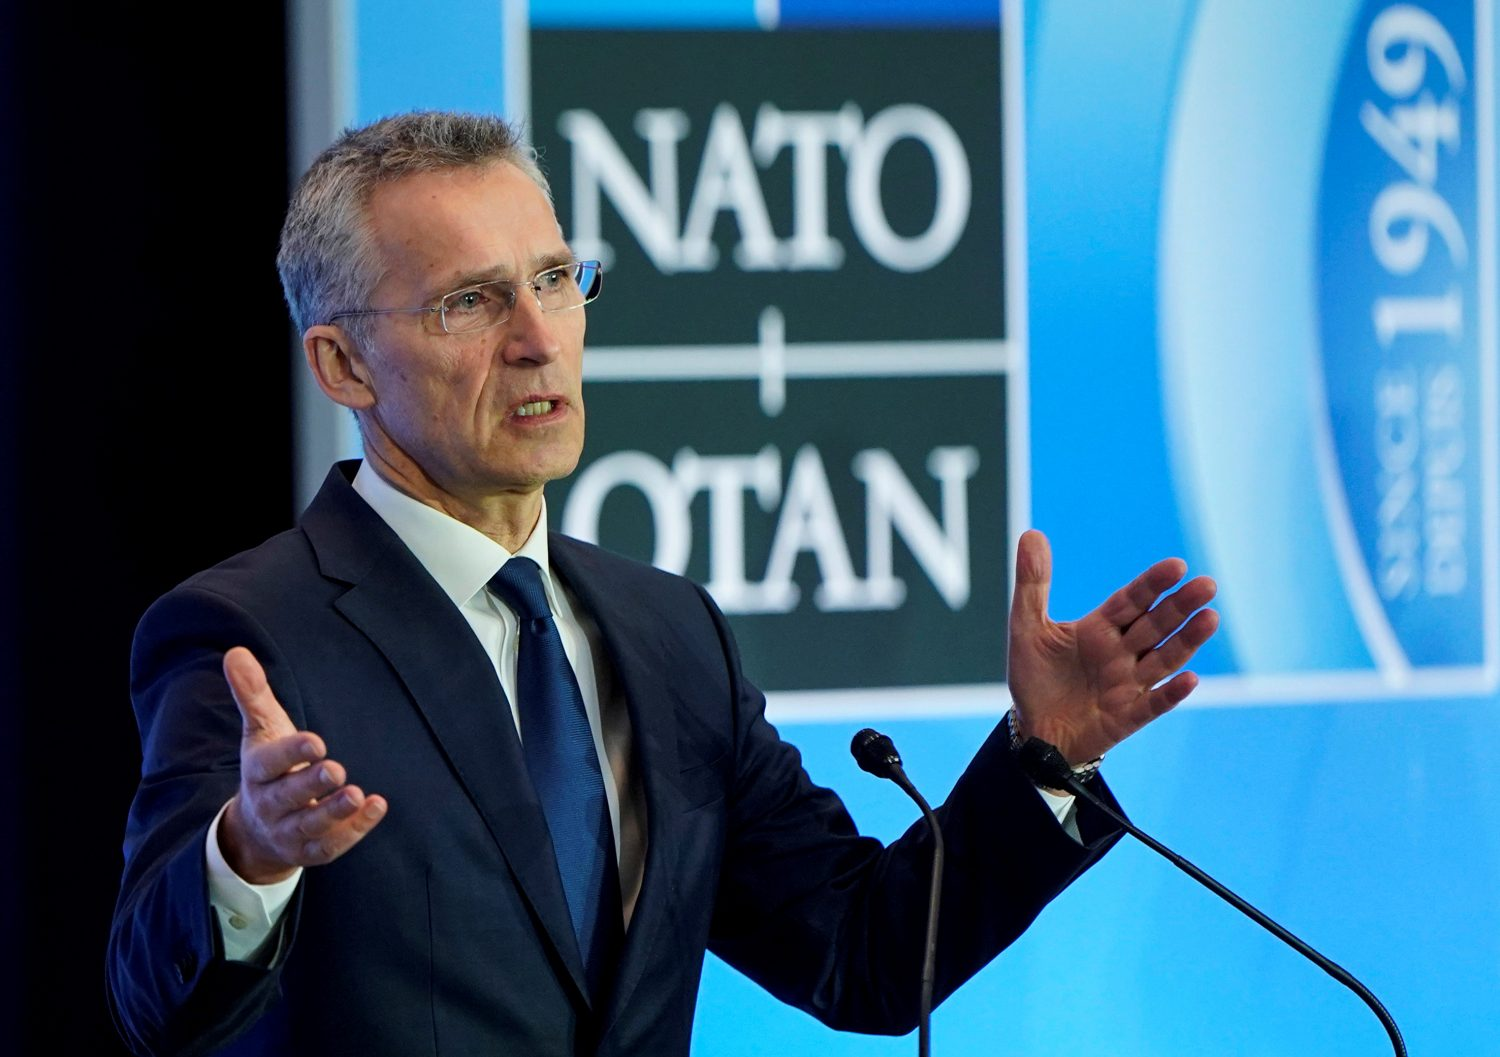 FILE PHOTO: NATO Secretary General Jens Stoltenberg speaks to the media during the NATO Foreign Minister's Meeting at the State Department in Washington, U.S., April 4, 2019. REUTERS/Joshua Roberts/File Photo